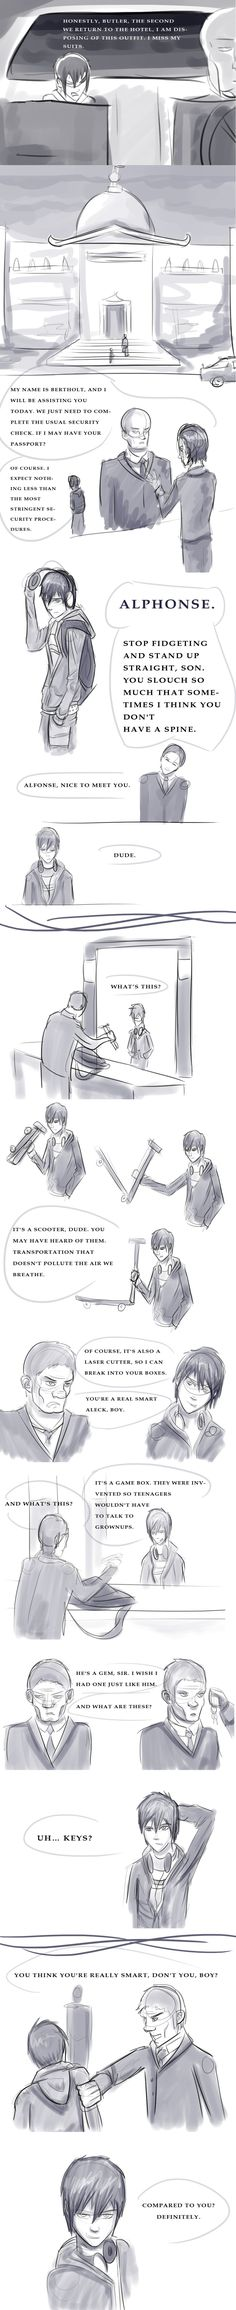 Artemis Fowl Book Four Sketchdump by Xayti.deviantart.com on @DeviantArt